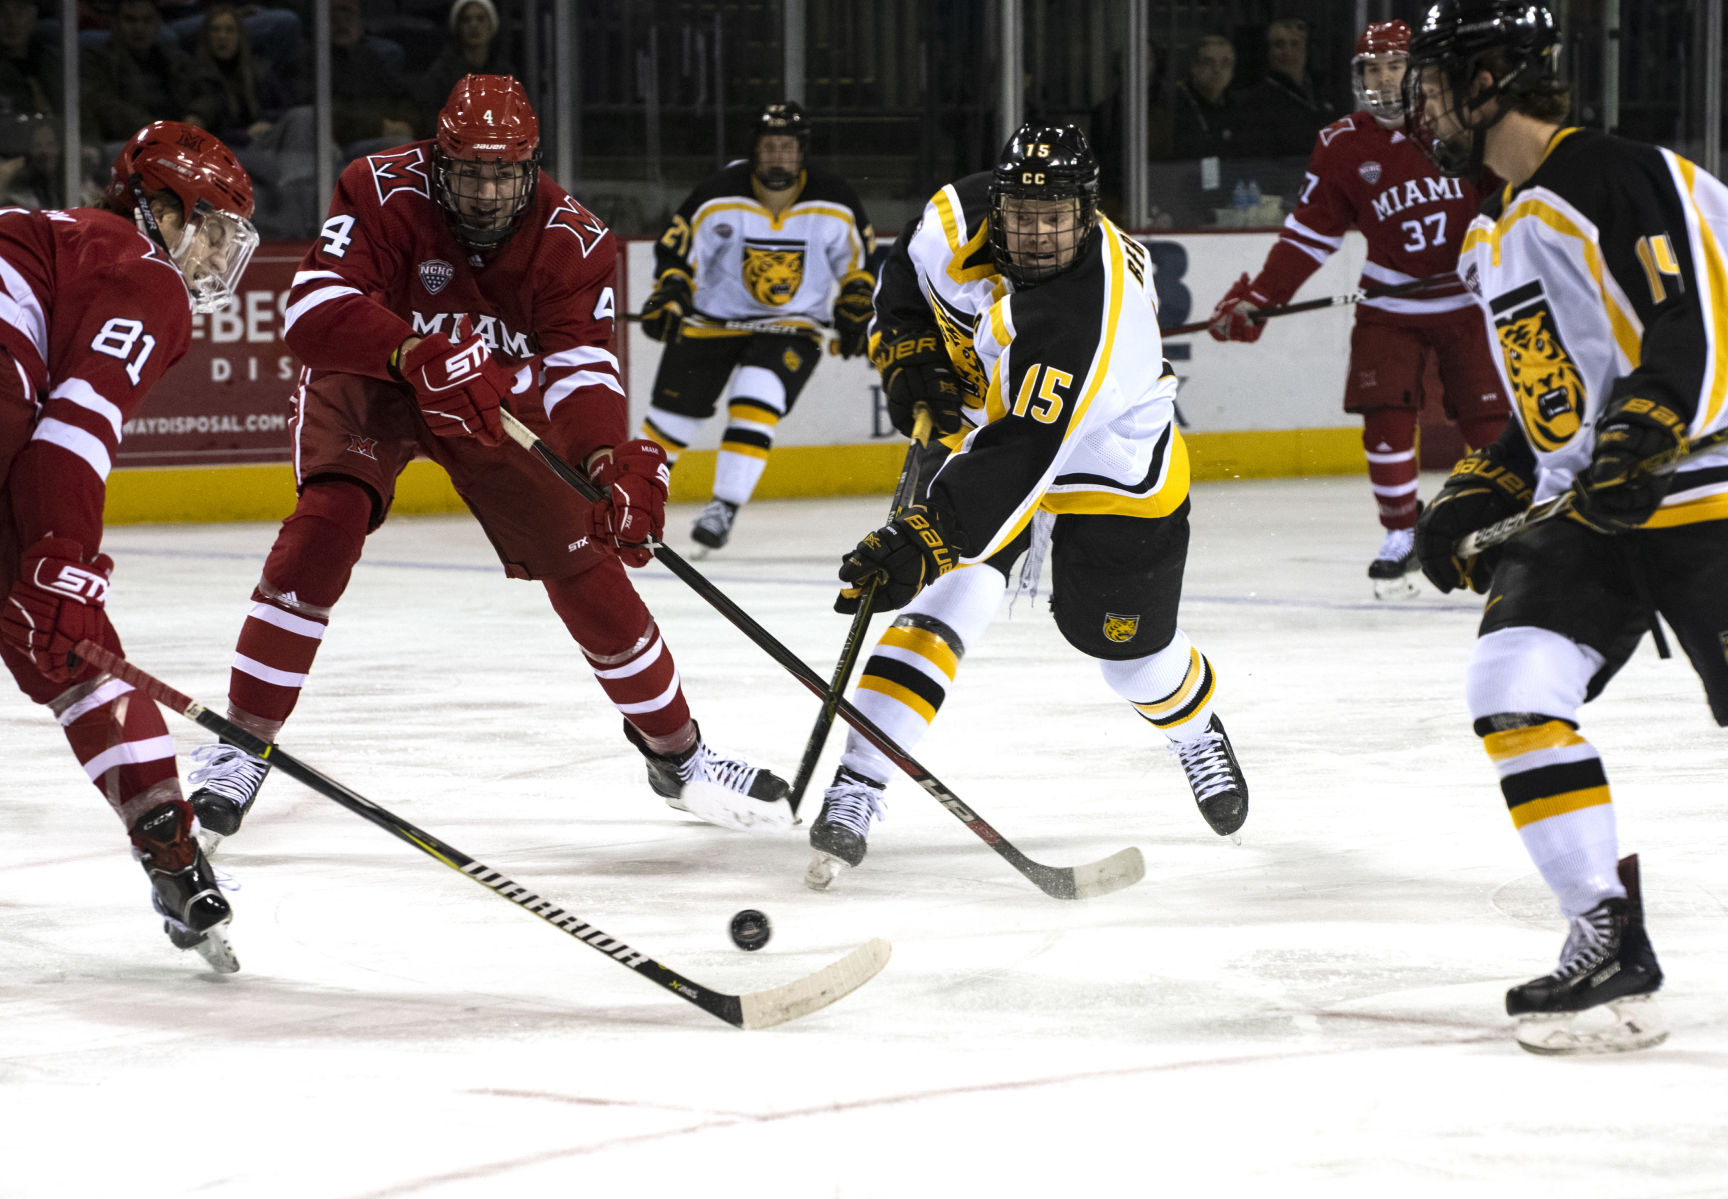 NCHC: Bergh Shakes Monkey Off His Back With First Goal Of Season As Colorado College Hockey Beats Miami 2-1